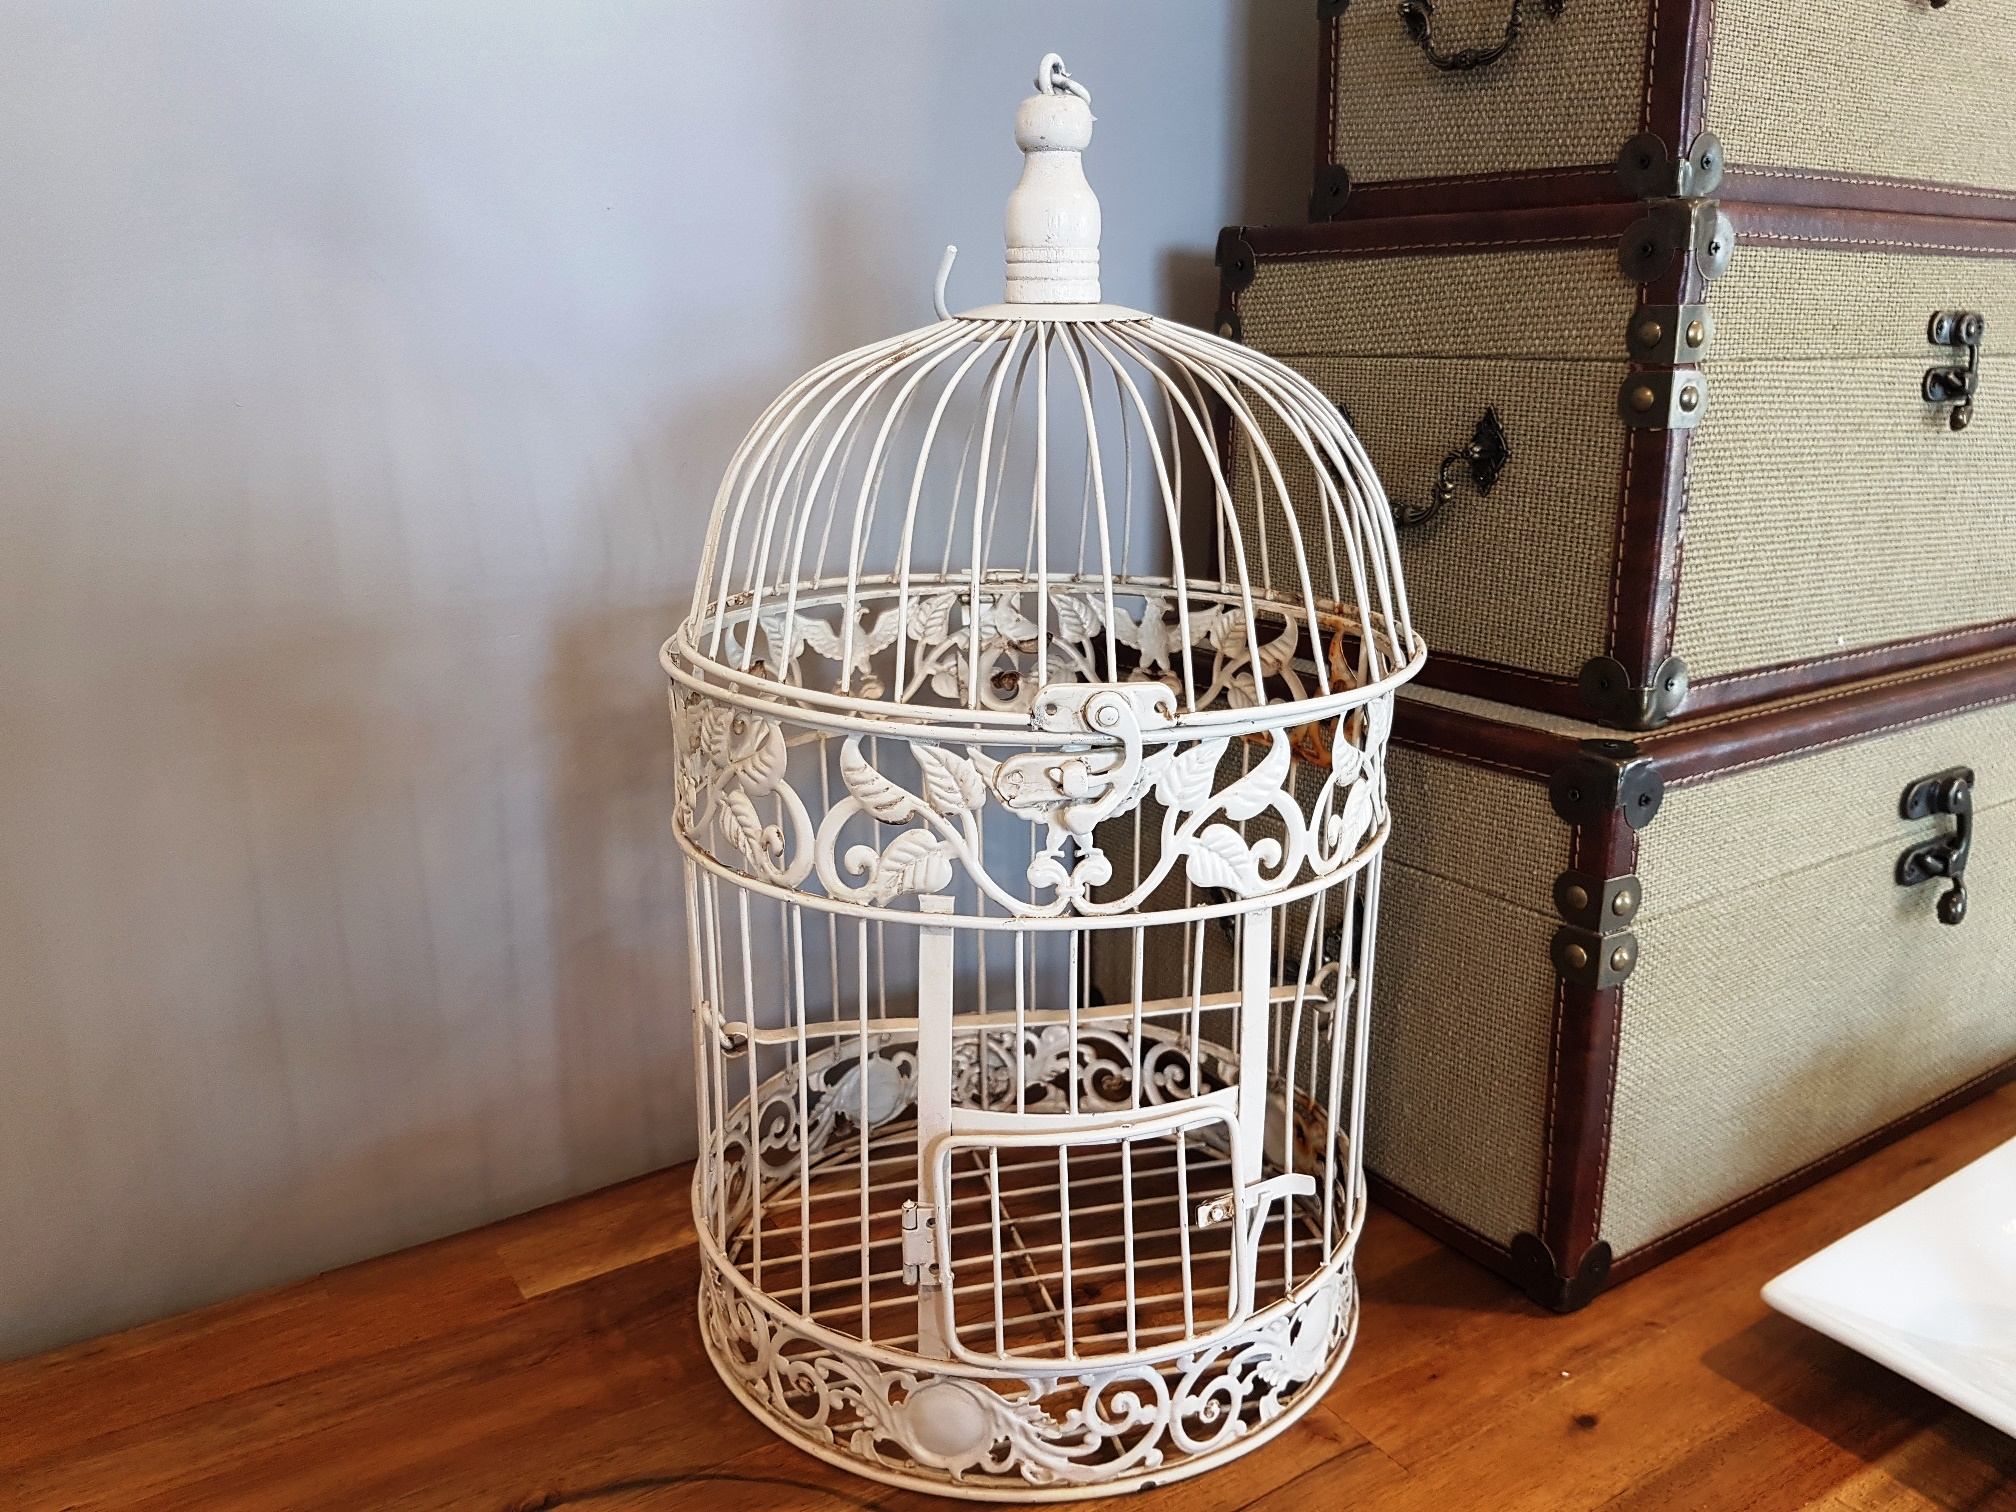 vintage bird cage large bathurst event wedding party equipment hire specialists. Black Bedroom Furniture Sets. Home Design Ideas